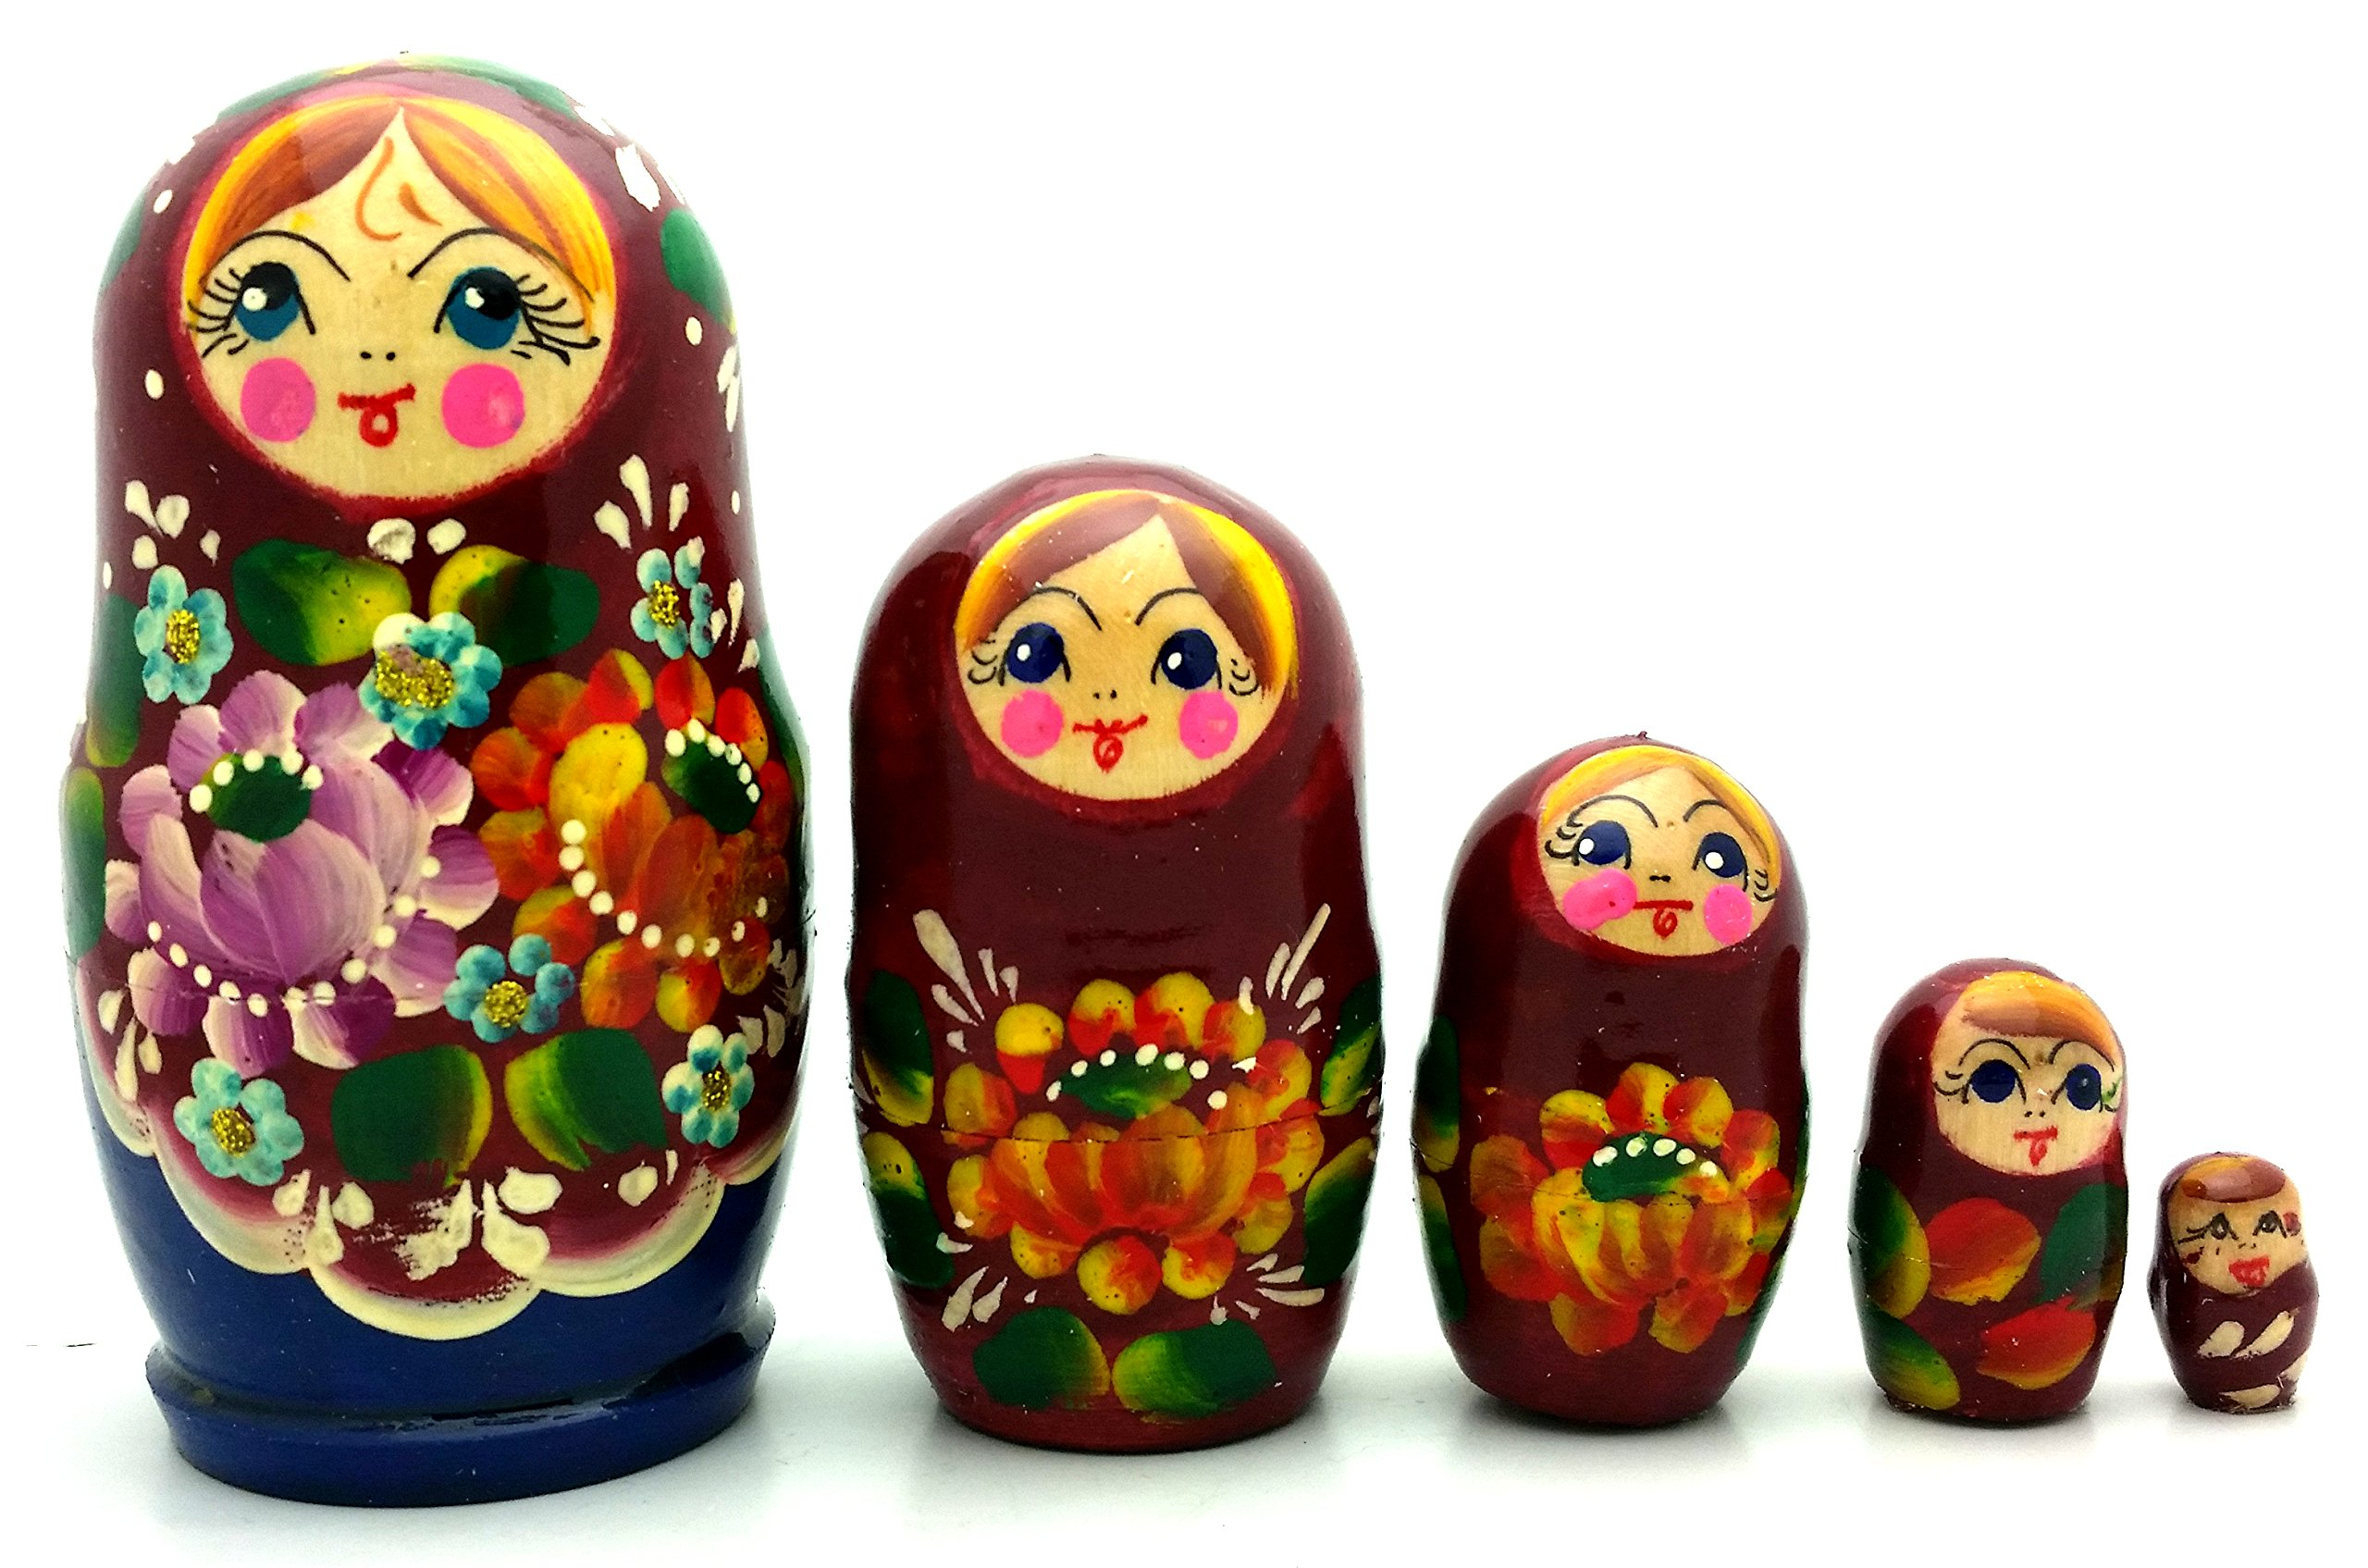 Lot of 3 Sets Russian Traditional Nesting Stacking Wooden Dolls Each Matryoshka Babushka set contains 5 dolls by BuyRussianGifts (Image #4)